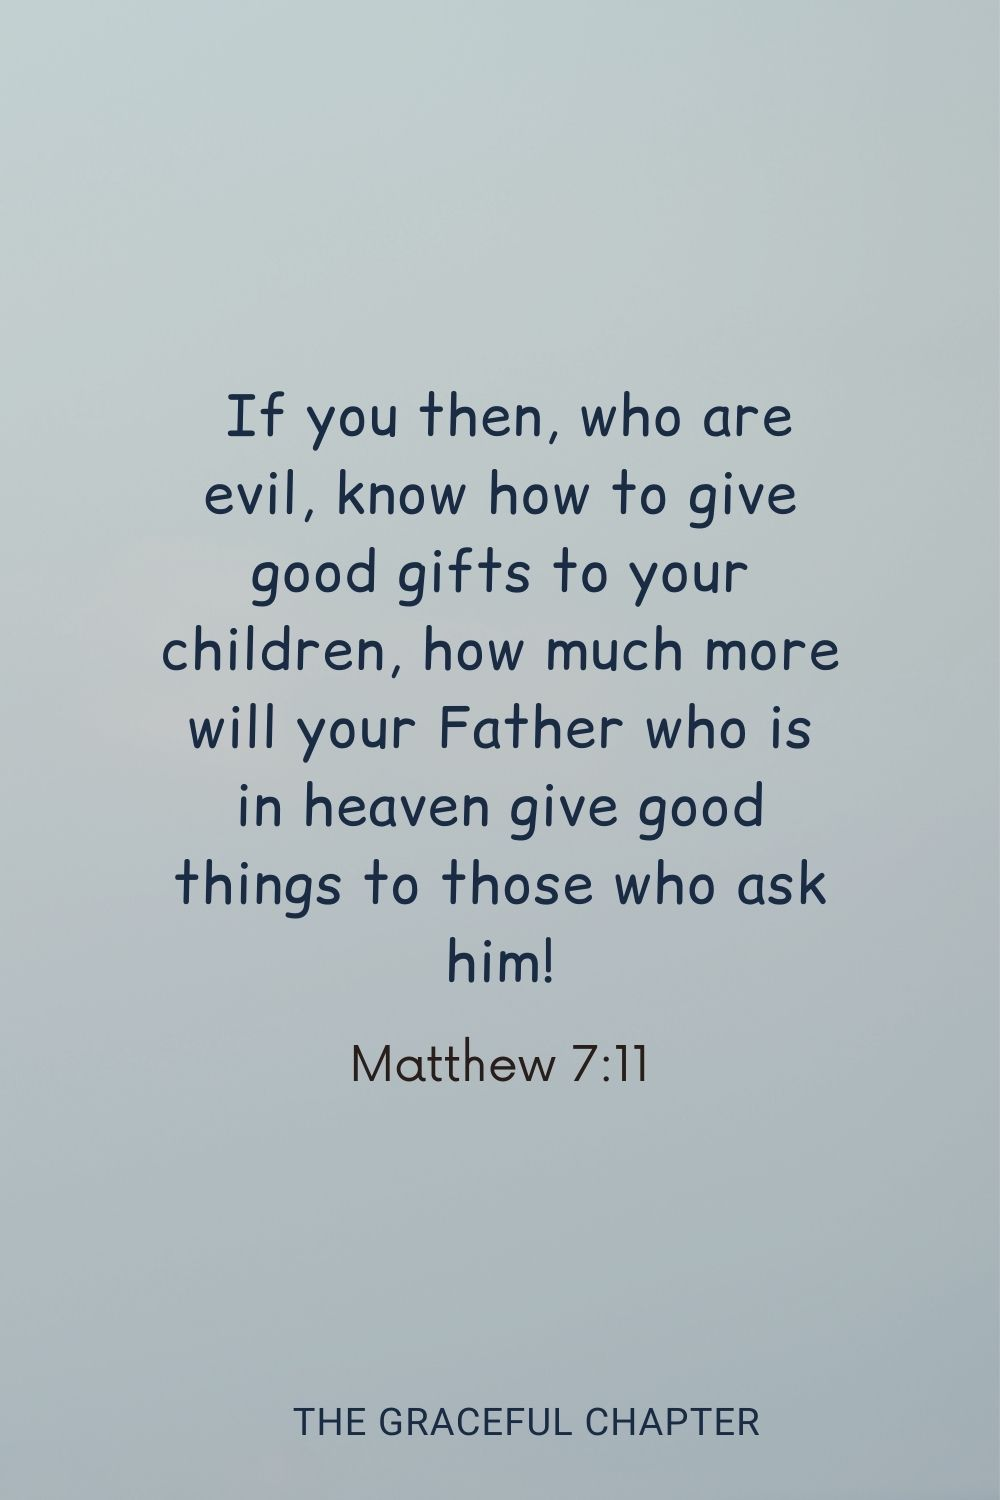 If you then, who are evil, know how to give good gifts to your children, how much more will your Father who is in heaven give good things to those who ask him! Matthew 7:11